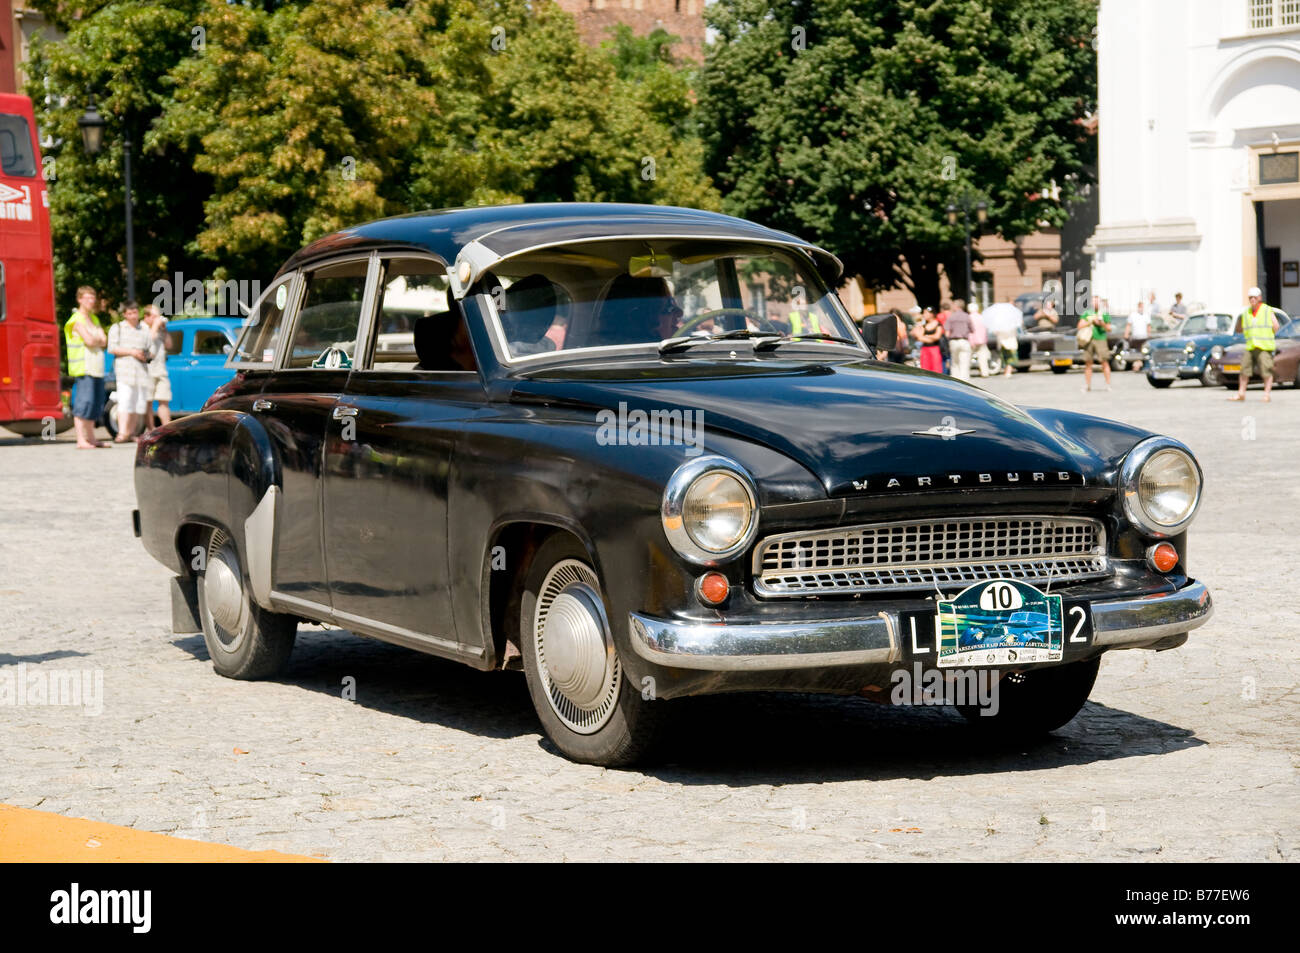 1964 Wartburg 1000 On Cars Competition During Xxxith Warsaw